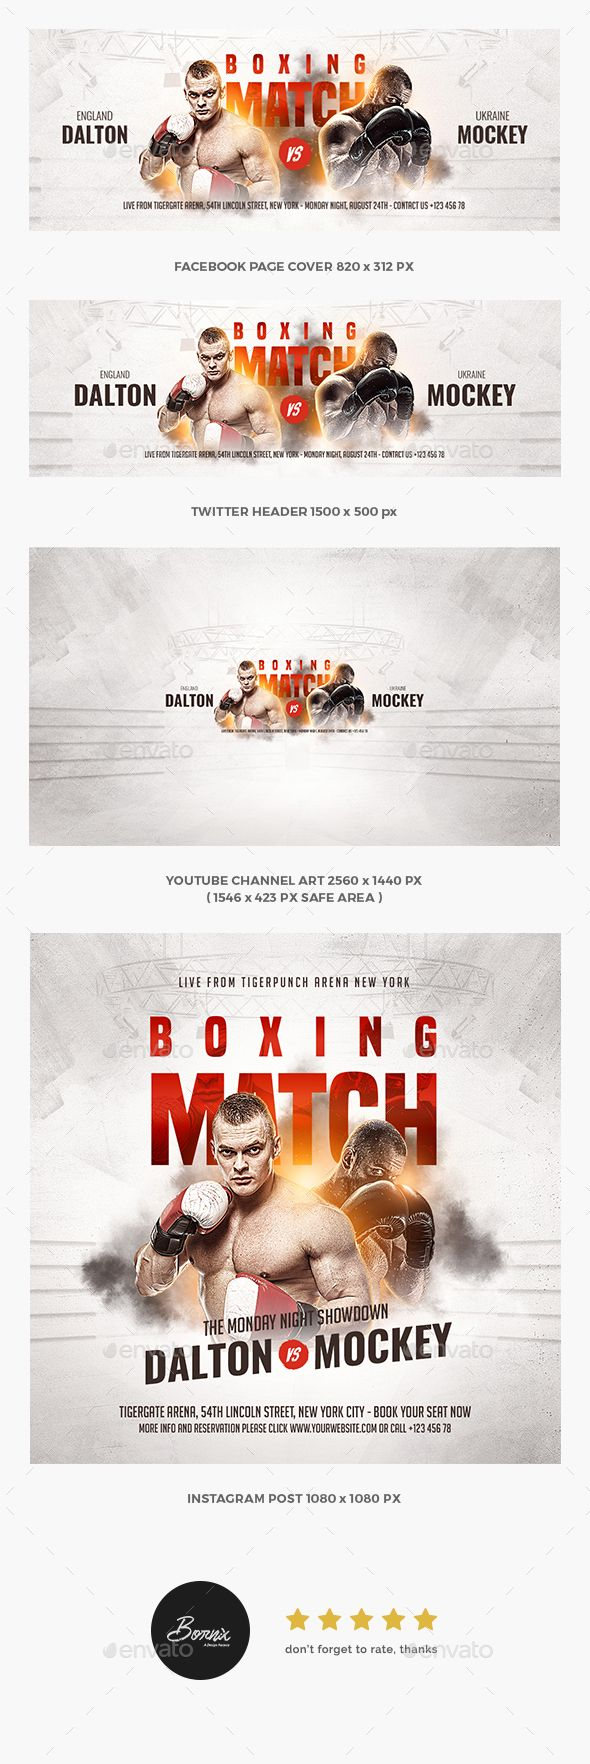 Boxing social media templates for Photoshop, only on GraphicRiver #graphicriver #social #media #templates #facebook #page #cover #twitter #header #youtube #channel #art #instagram #feeds #post #banner #web #website #promotion #sport #boxing #boxer #fighting #mma #kickboxing #fighter #professional #fitness #training #ads #advertisements